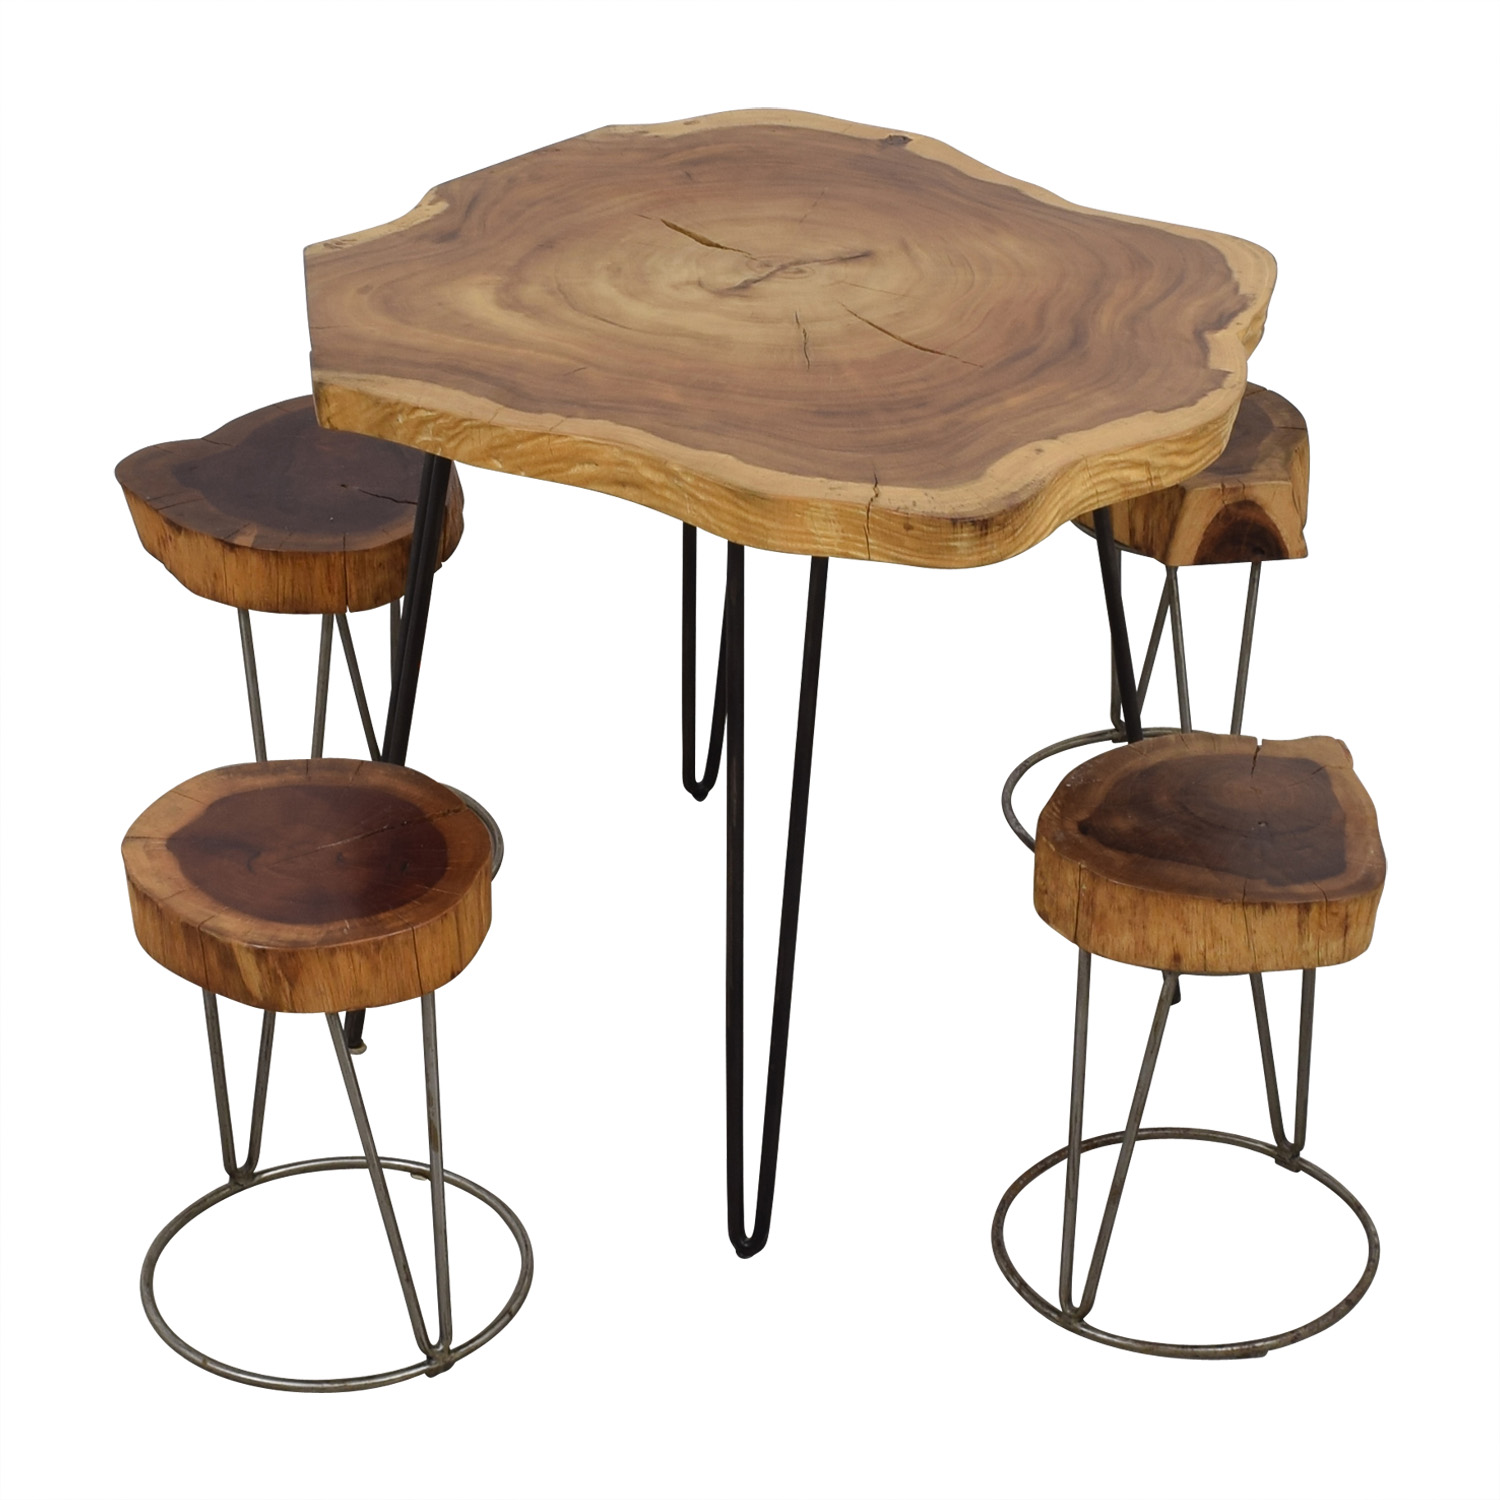 From the Source From the Source Custom Raw Rustic Wooden Table and Stools used